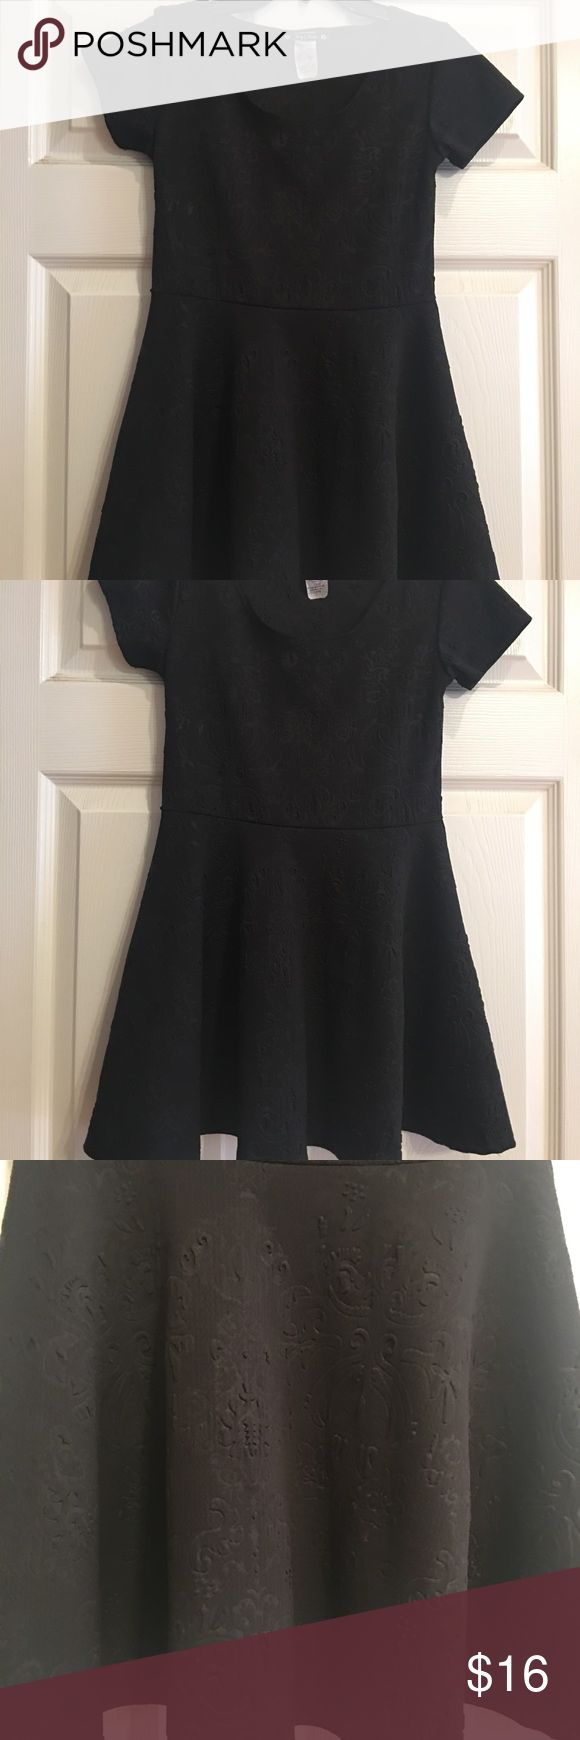 Black circle skirt dress.  Girls 10 Black circle skirt dress.  Perfect condition.  Worn once.  Girls size 10 Dresses Casual